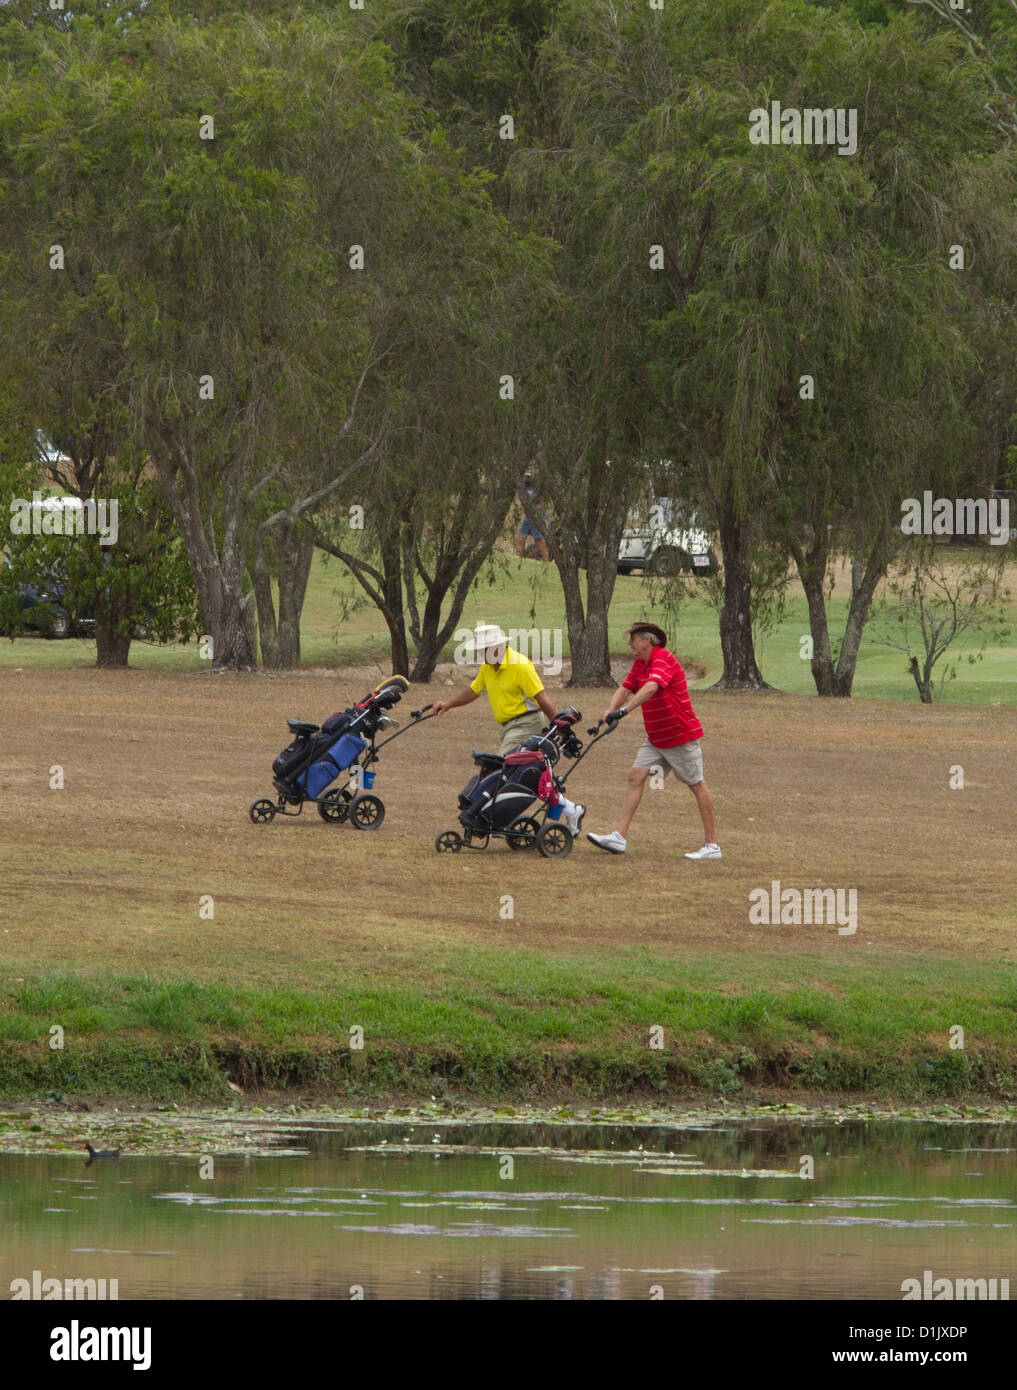 Two golfers pushing gulf buggies across green at golf course - Stock Image